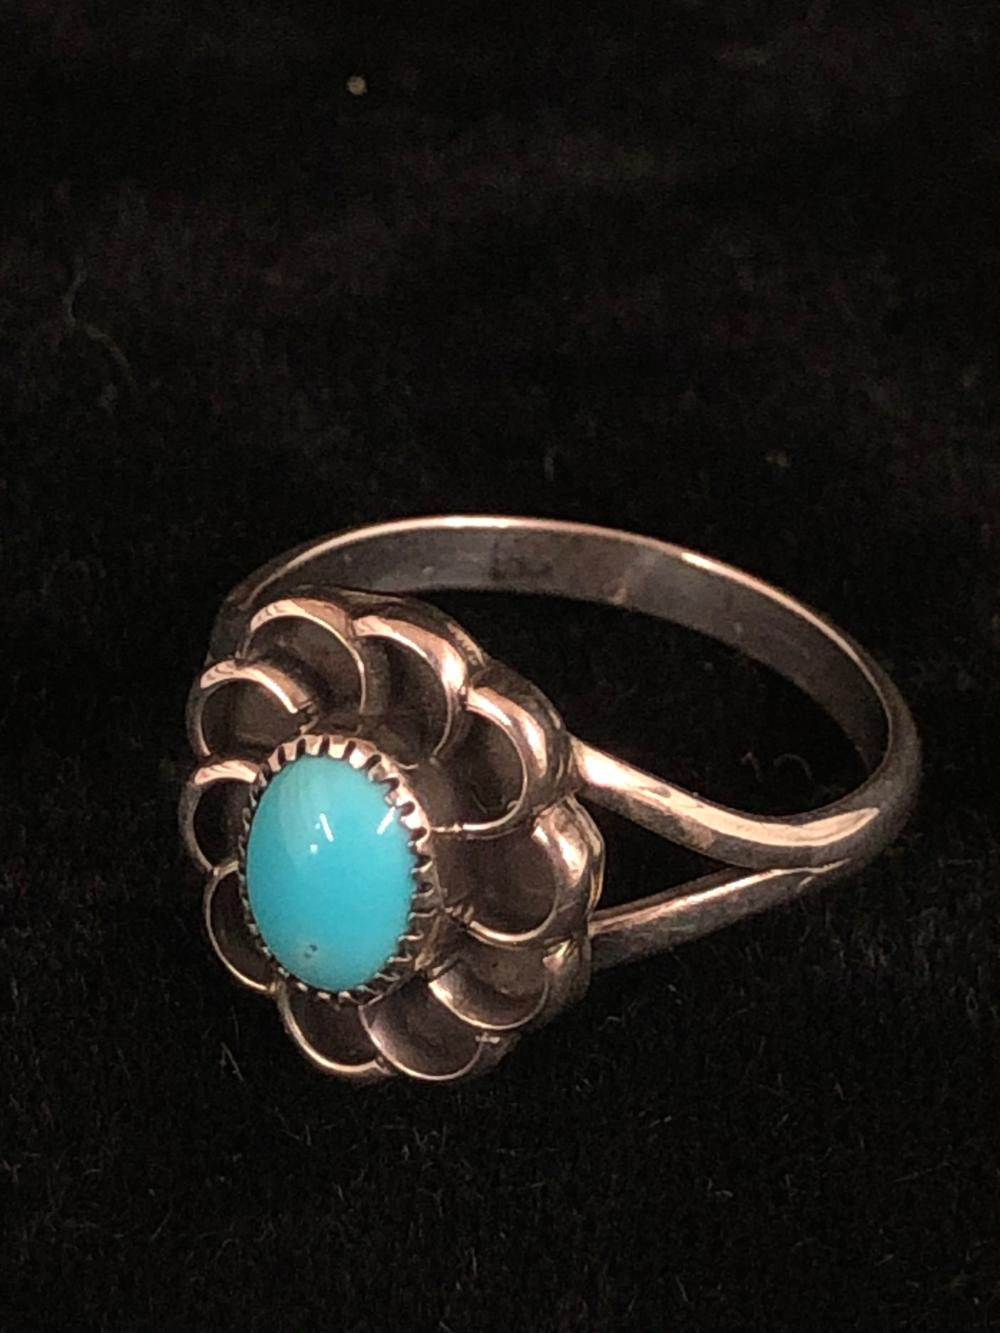 Turquoise with floral design sterling silver ring